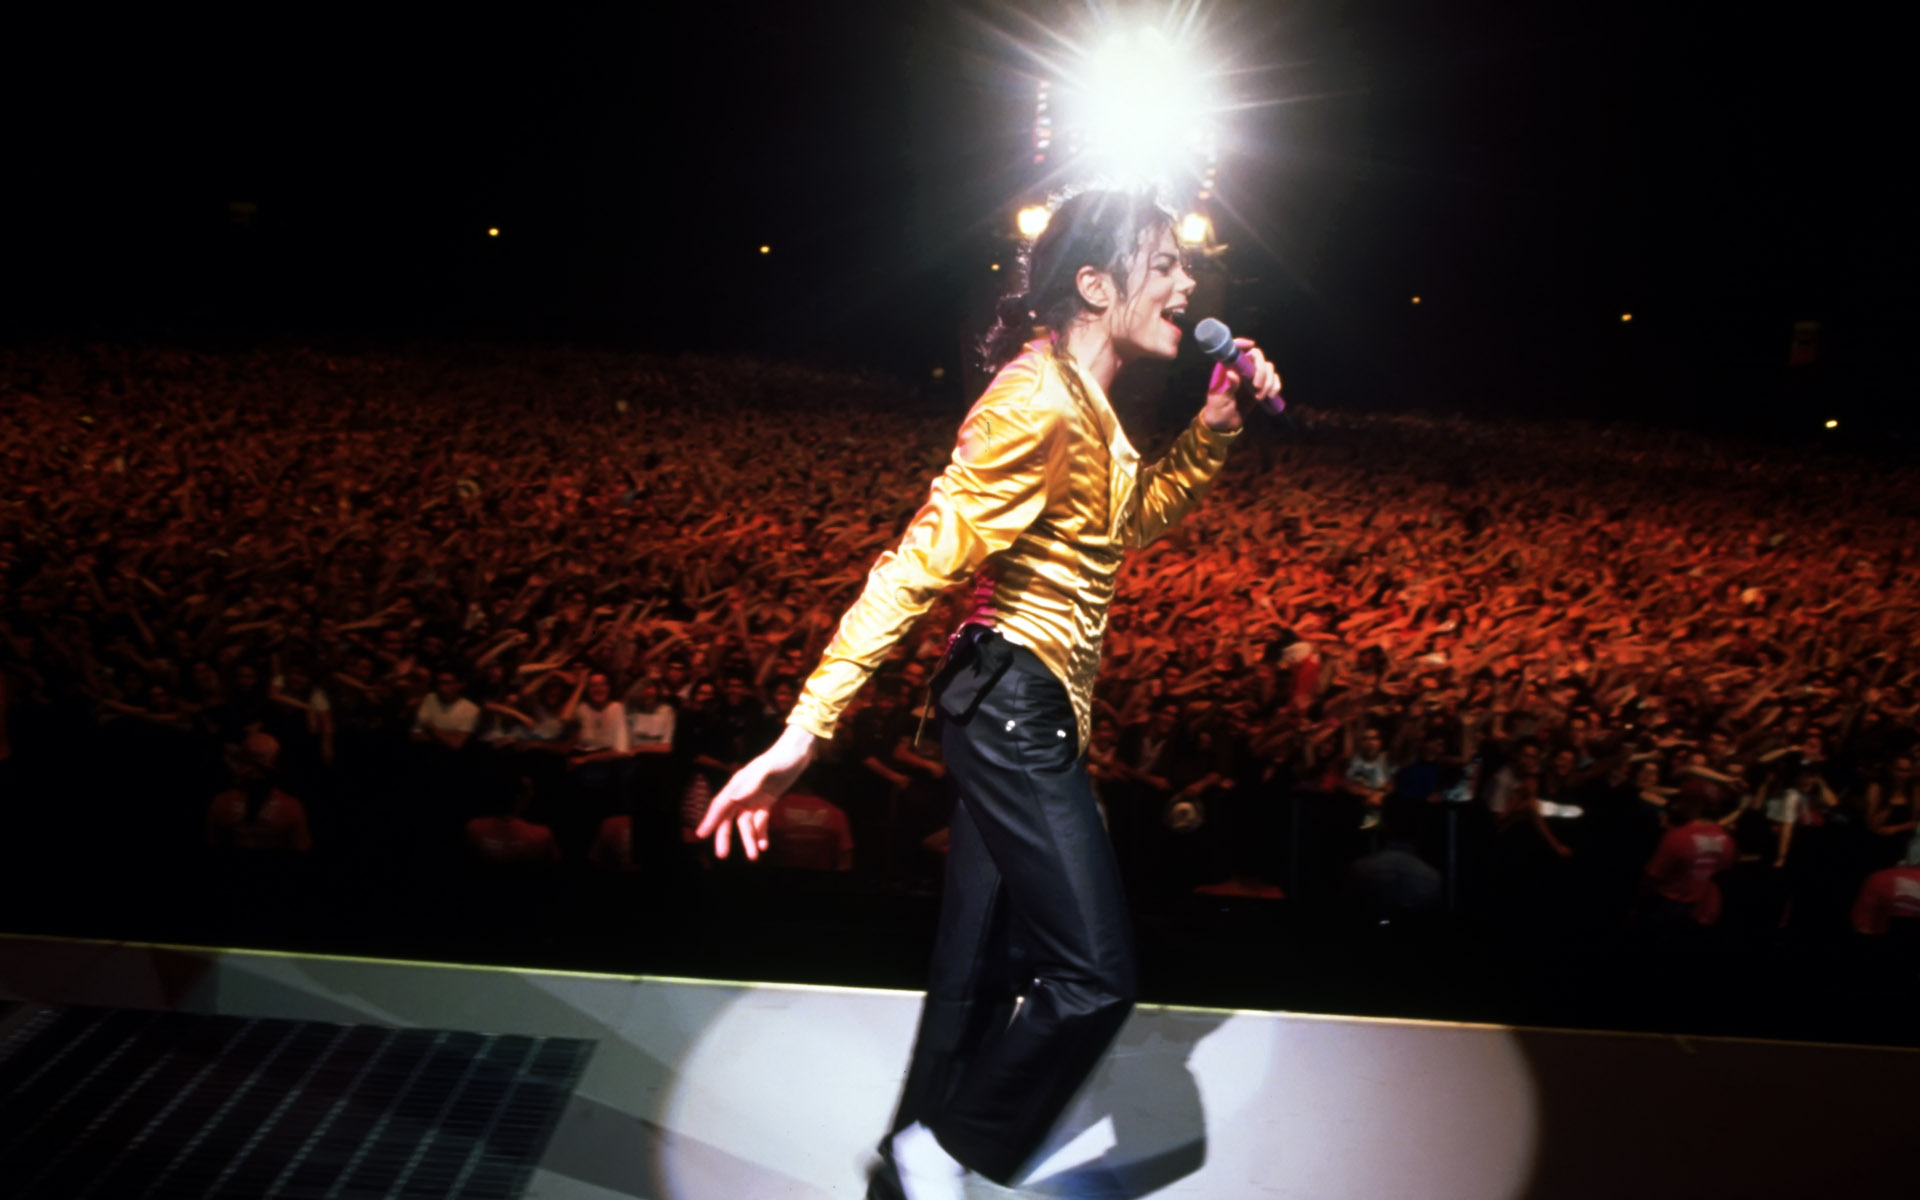 michael jackson on stage wallpaper 173244